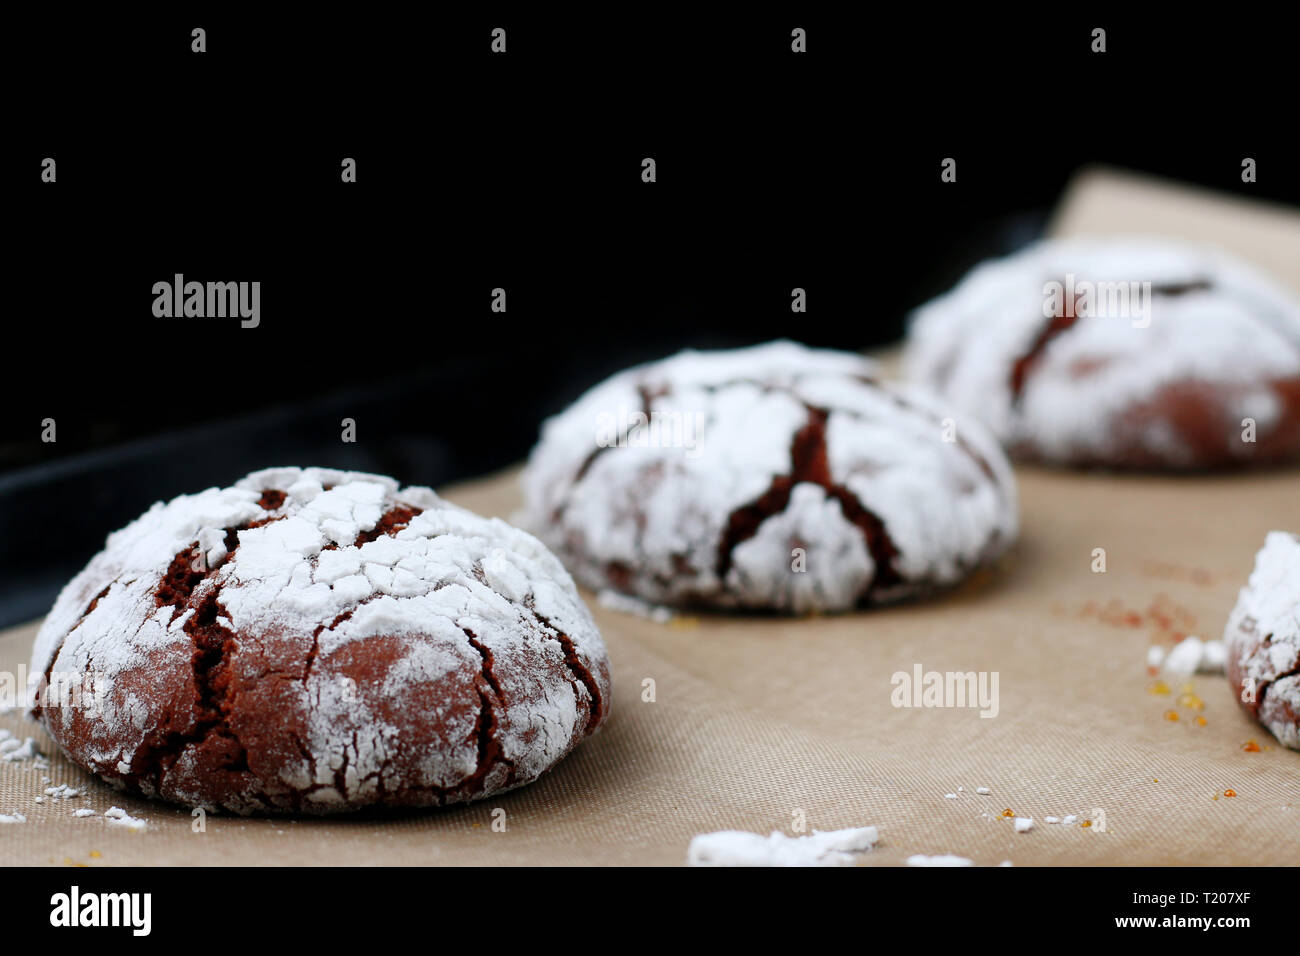 Chocolate cookies with cracks on baking paper and iolated on black. Cracked chocolate biscuits. Stock Photo